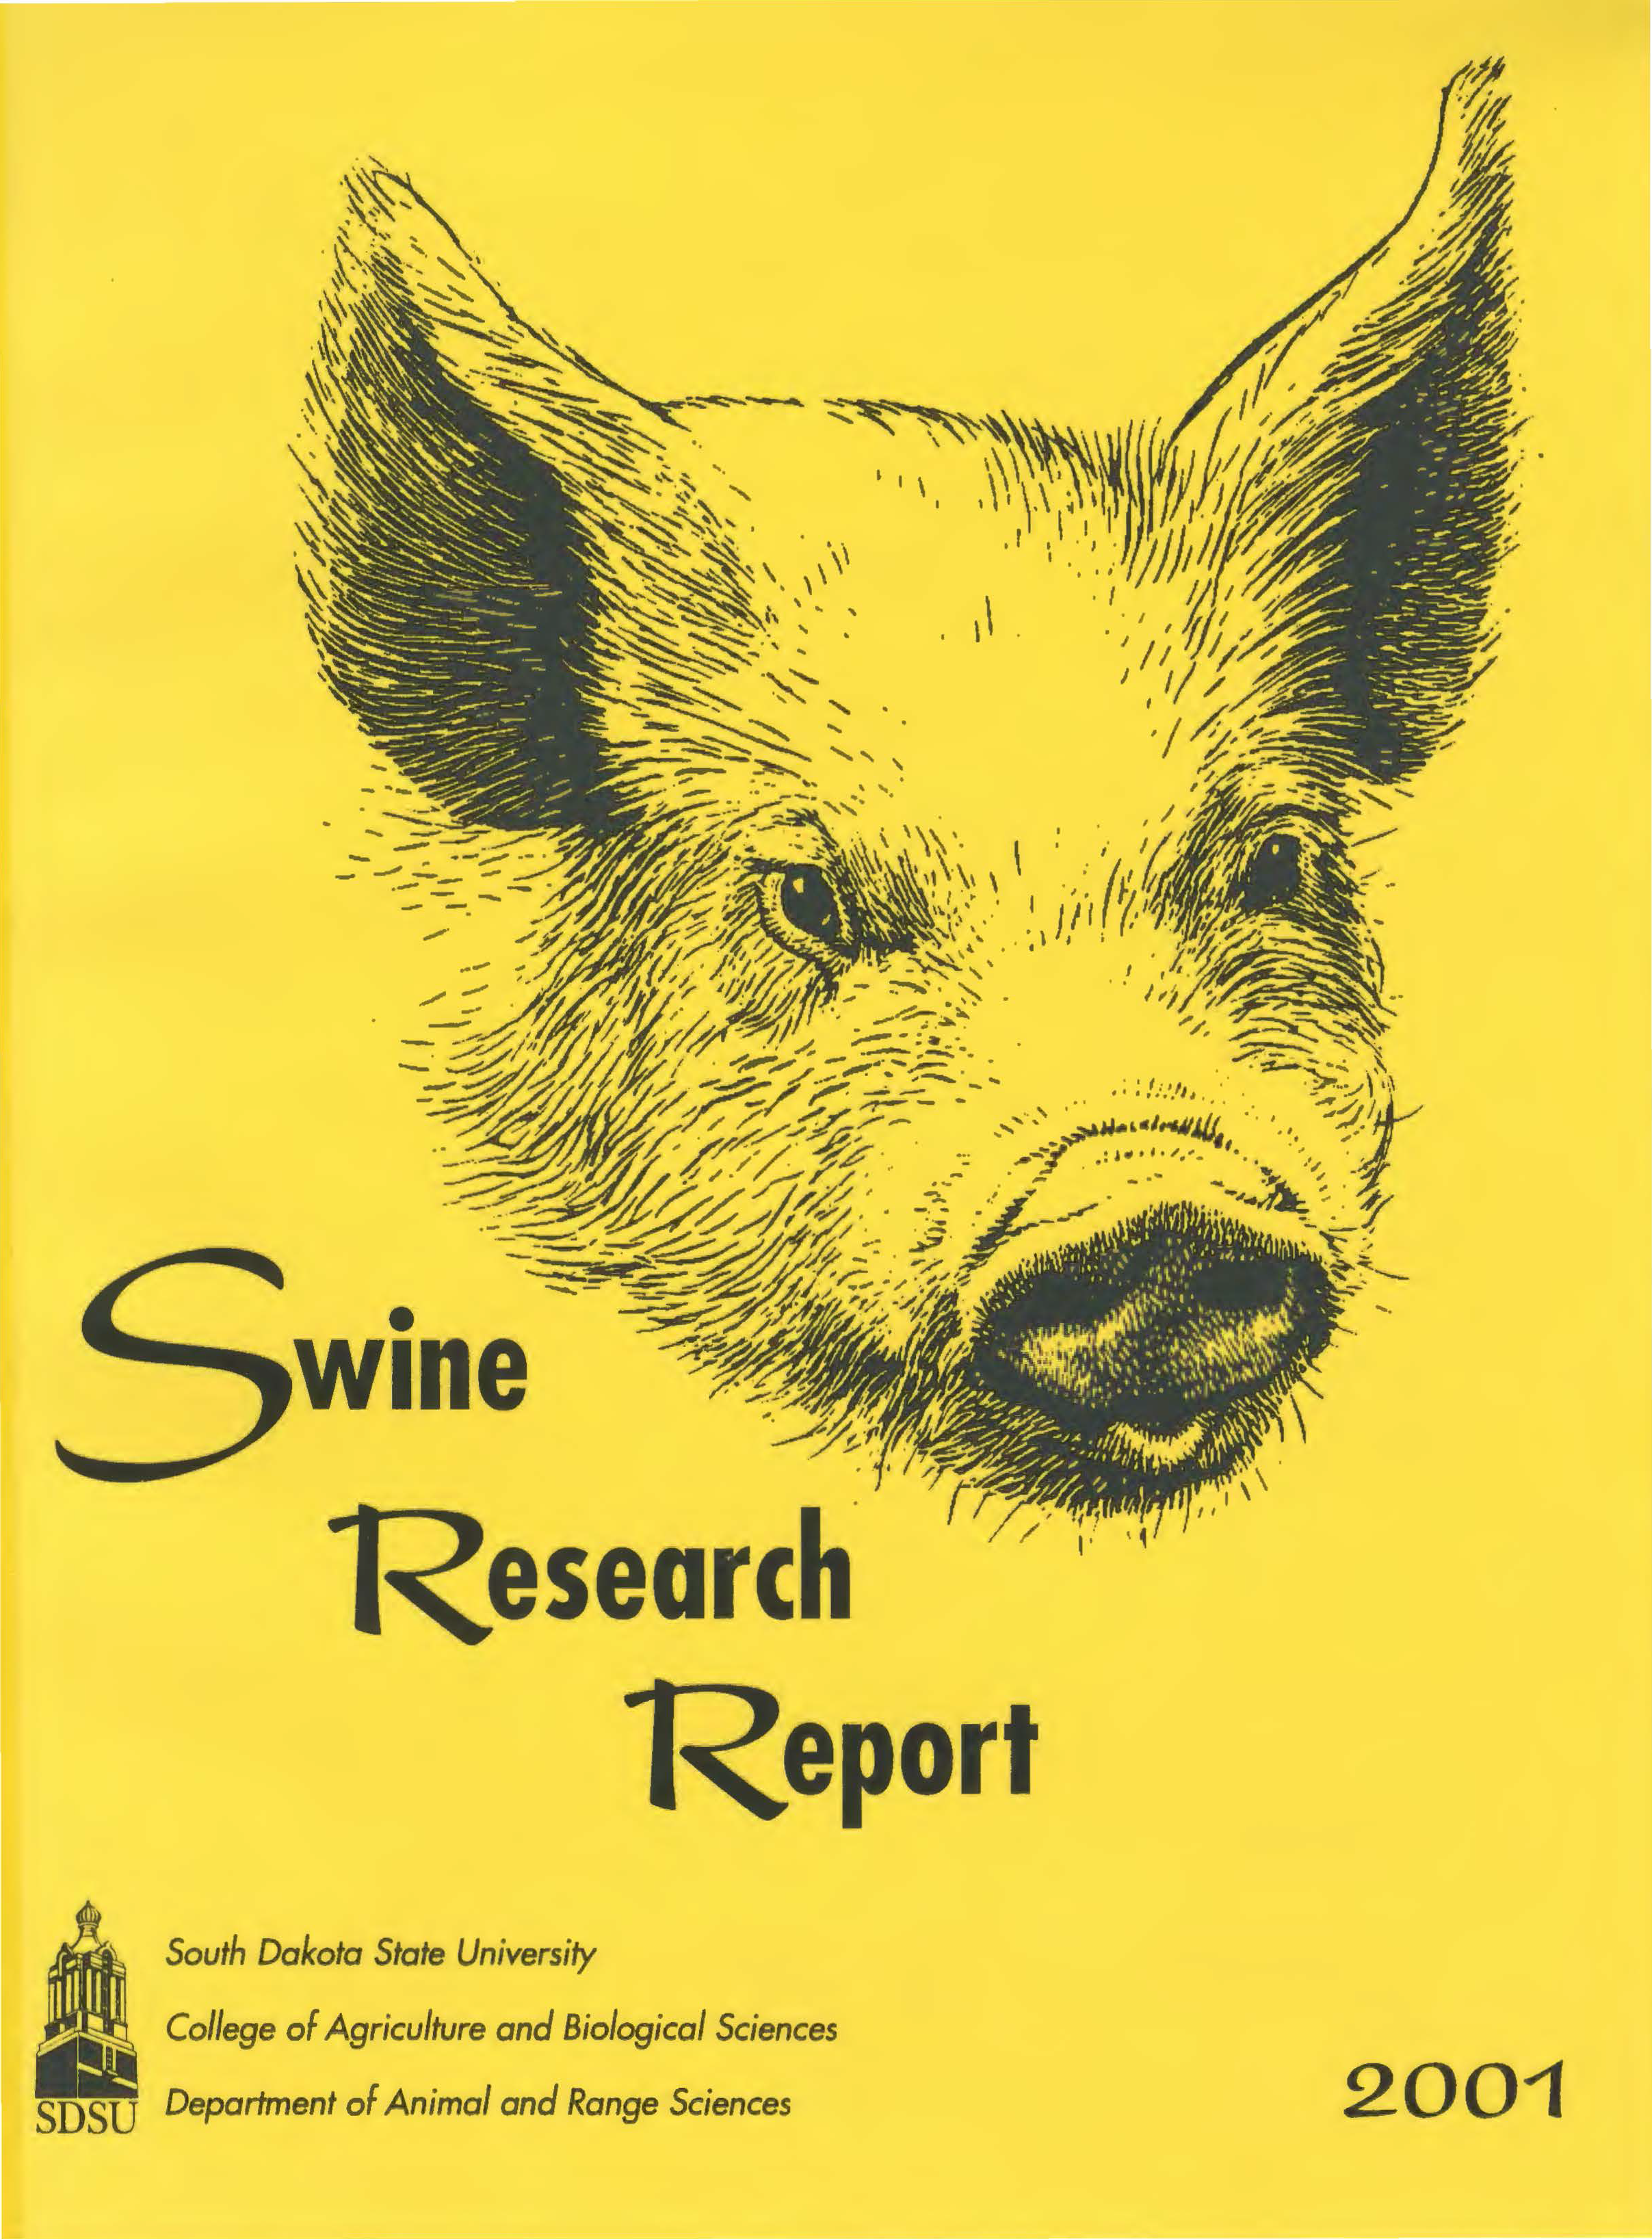 South Dakota Swine Research Report, 2001